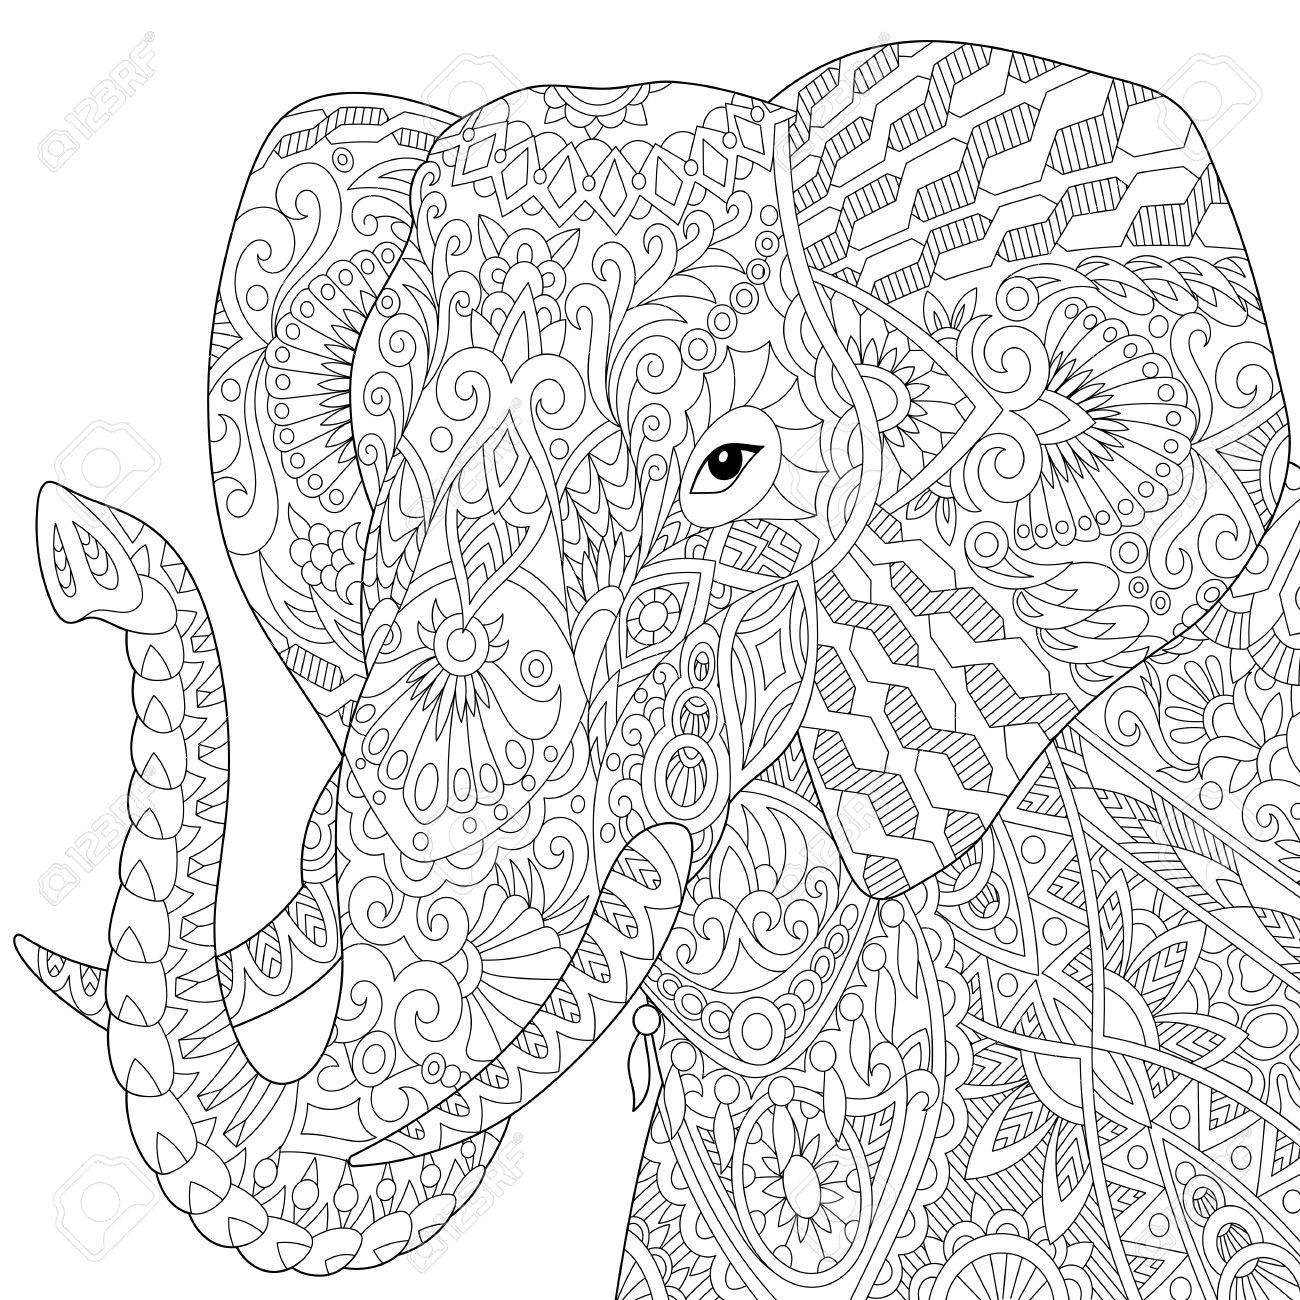 Stylized elephant, isolated on white background. Freehand sketch for adult anti stress coloring book page with doodle and zentangle elements. - 66648271